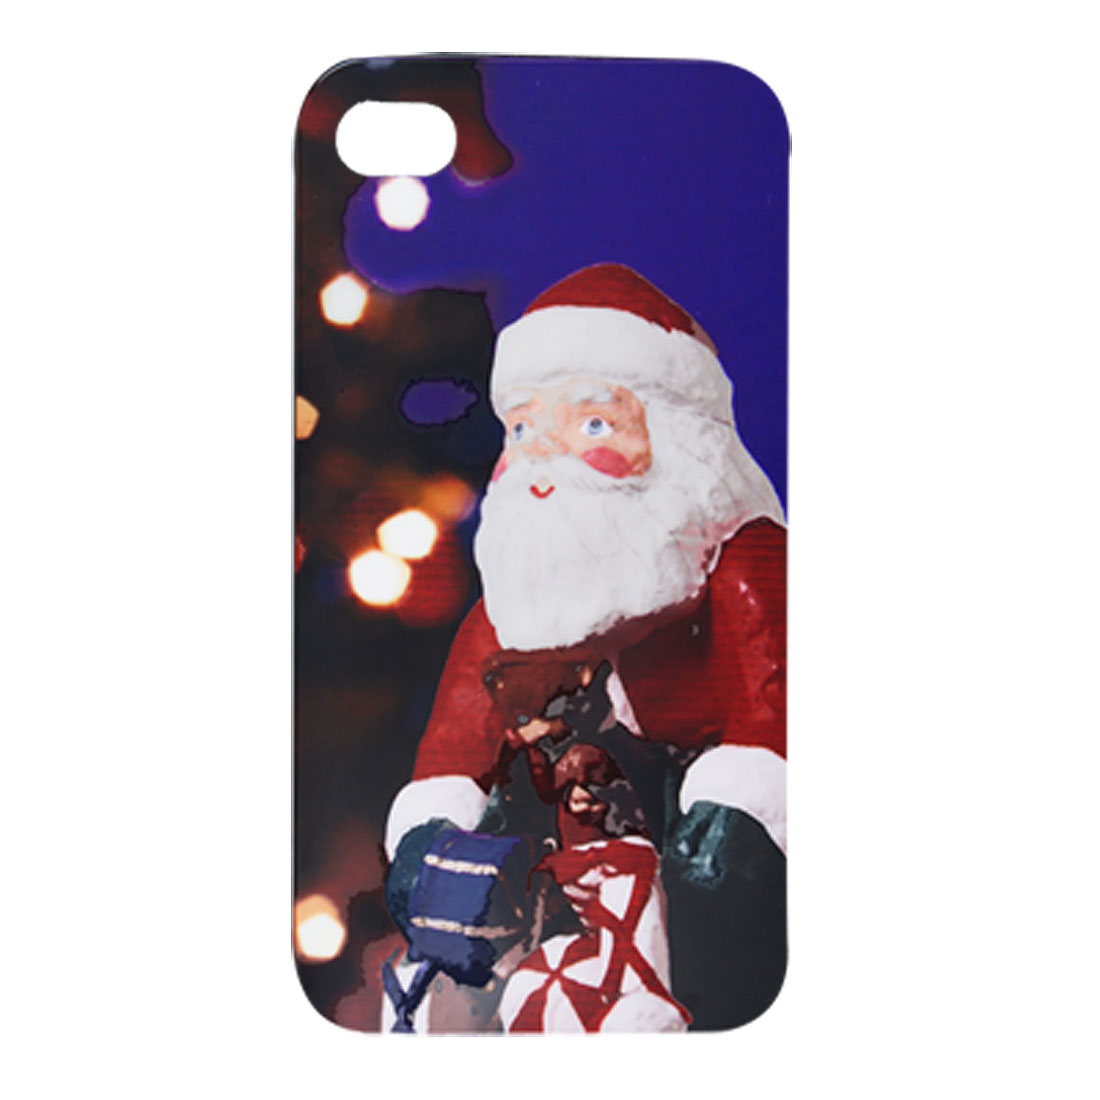 Hard Plastic Santas Gifts Print Back Case for iPhone 4 4G